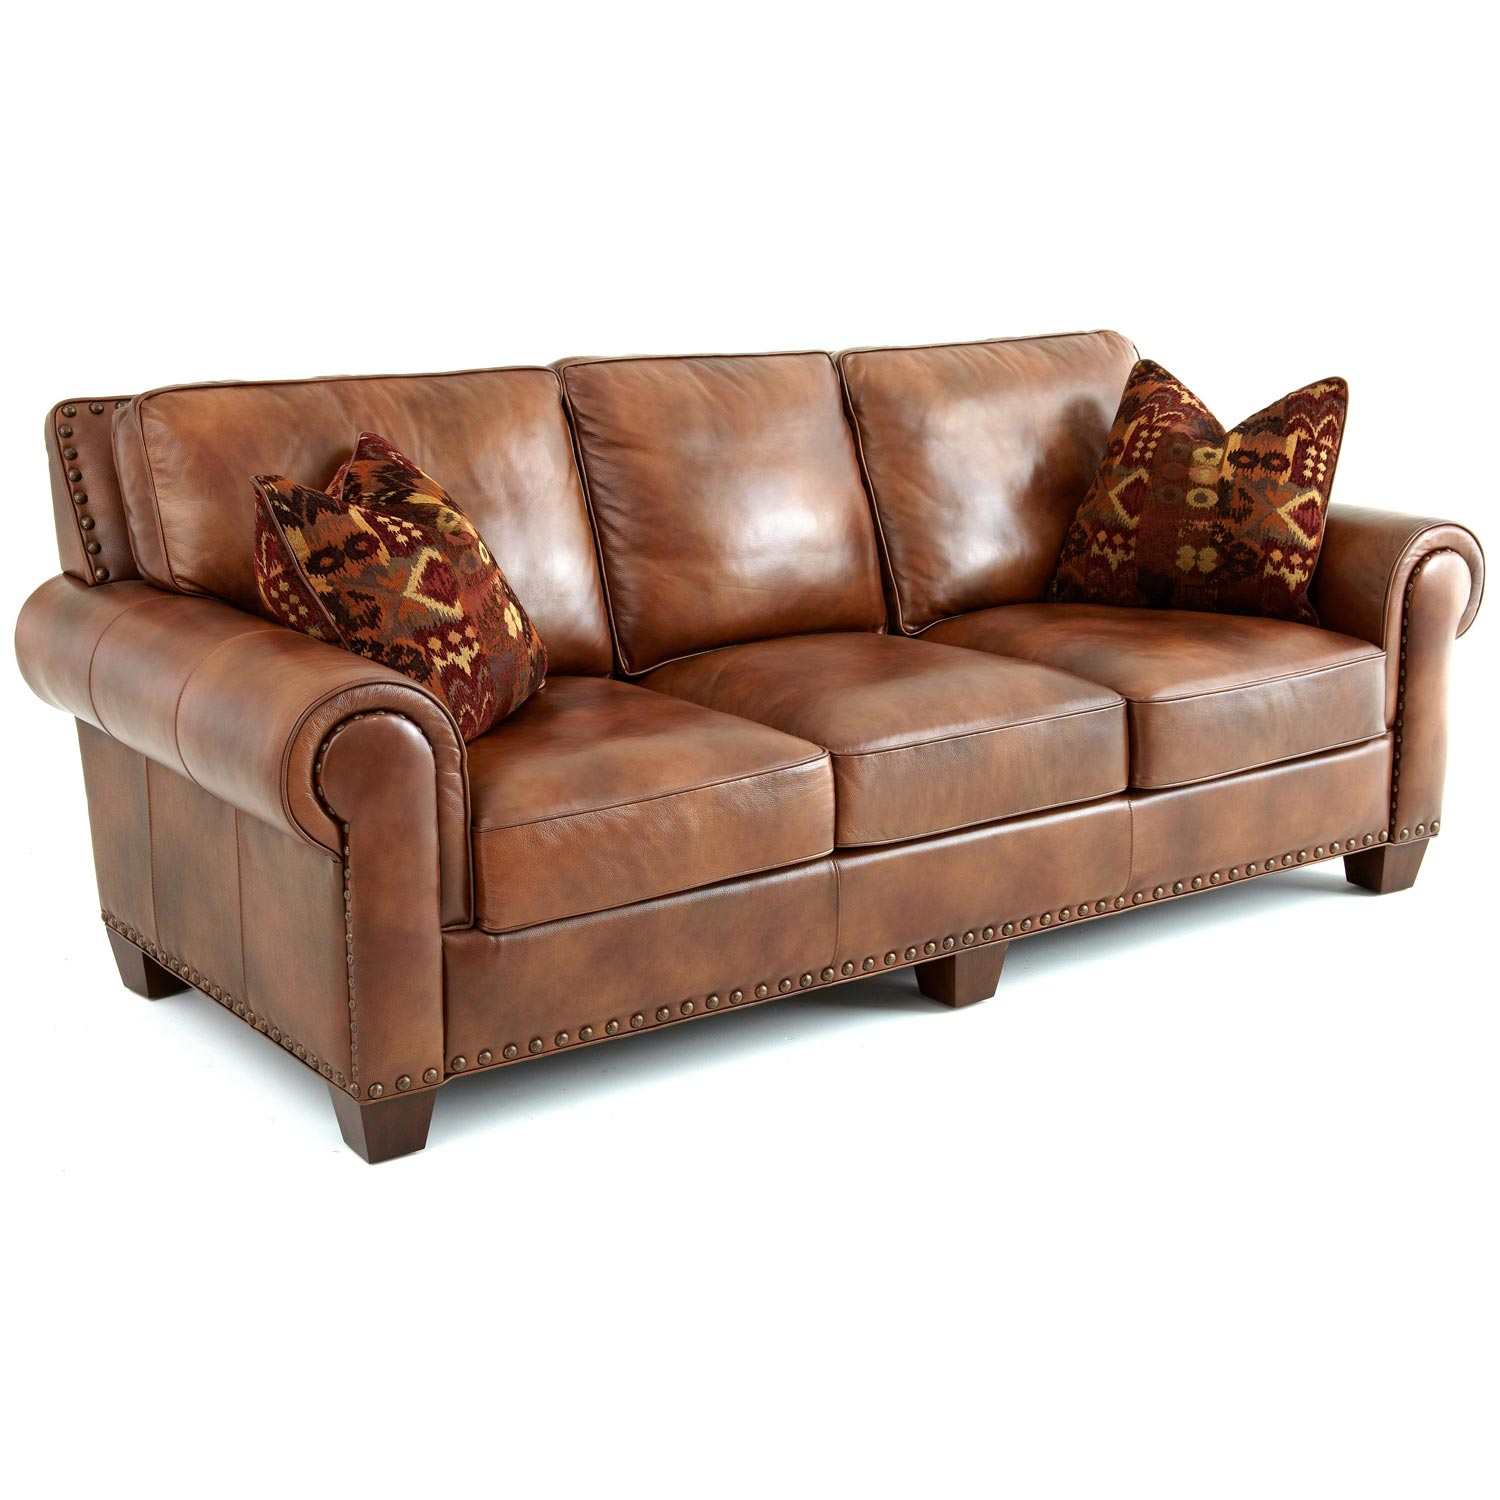 Silverado Sofa - Rolled Arms, Pillows, Caramel Brown Leather DCG Stores